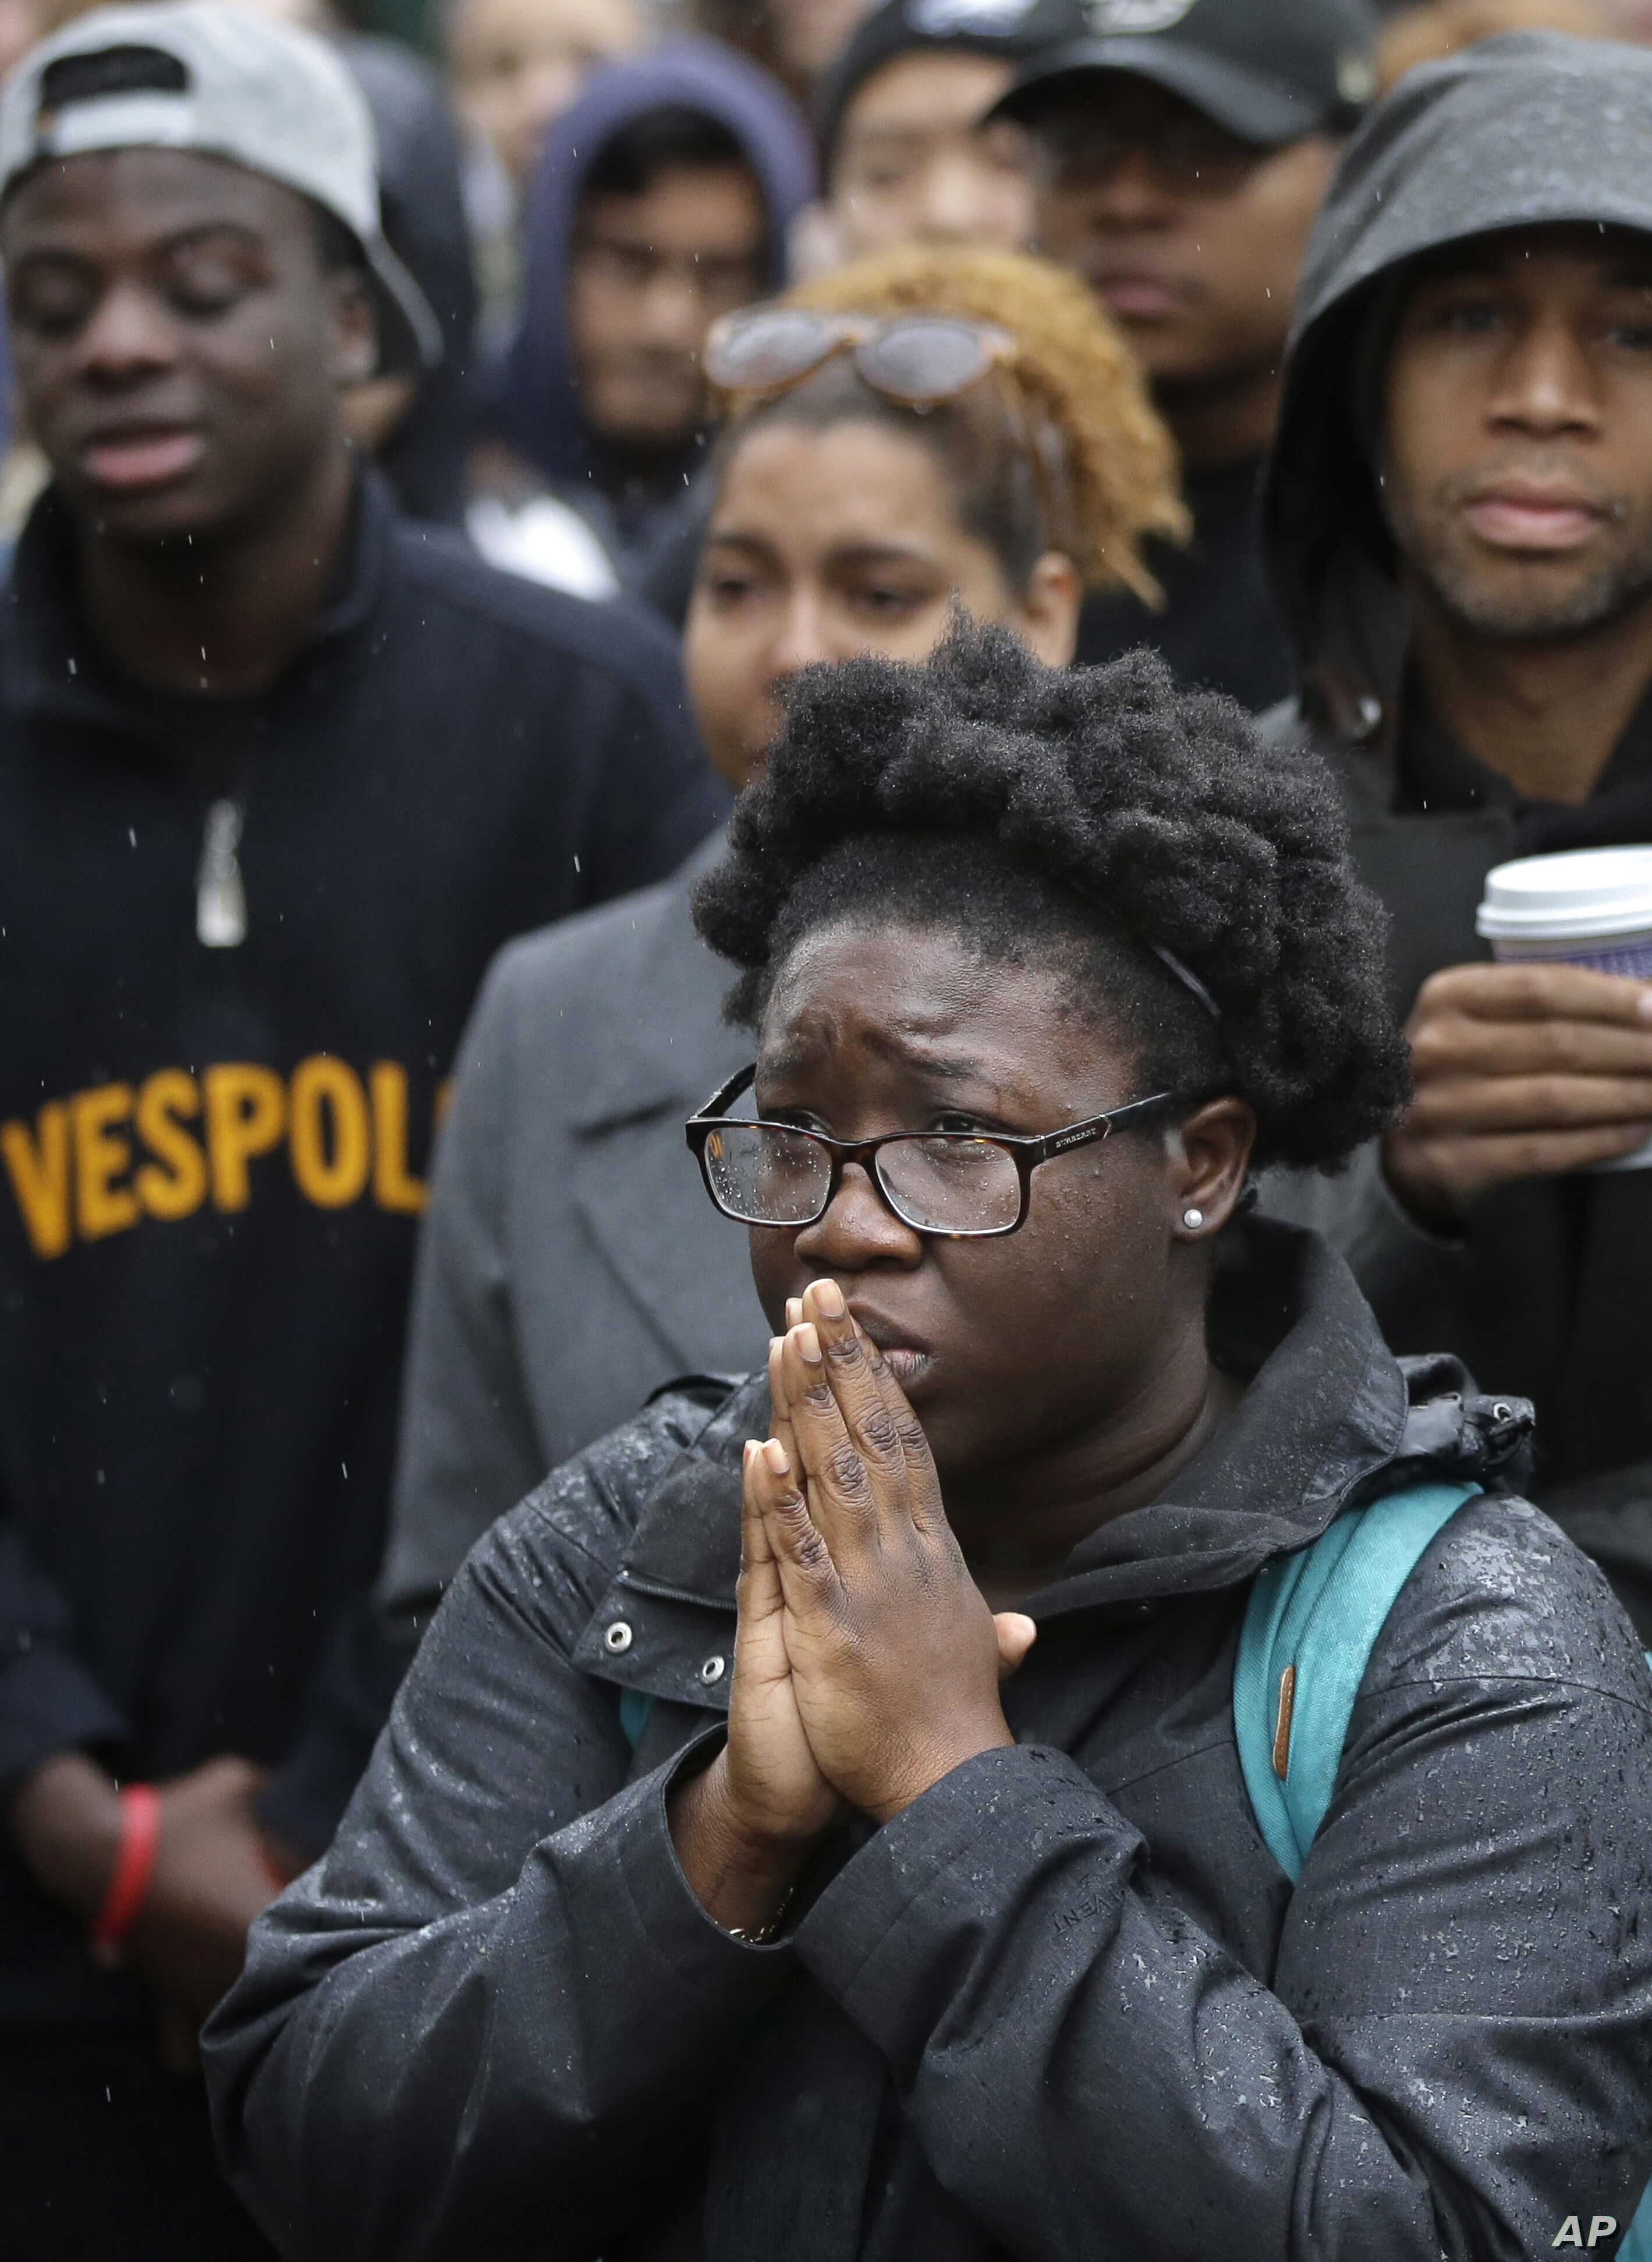 Boston College student Akosua Opokua-Achampong, of Lake Hopatcong, N.J., places her hands together during a solidarity demonstration on the school's campus, in Newton, Mass., Nov. 12, 2015.